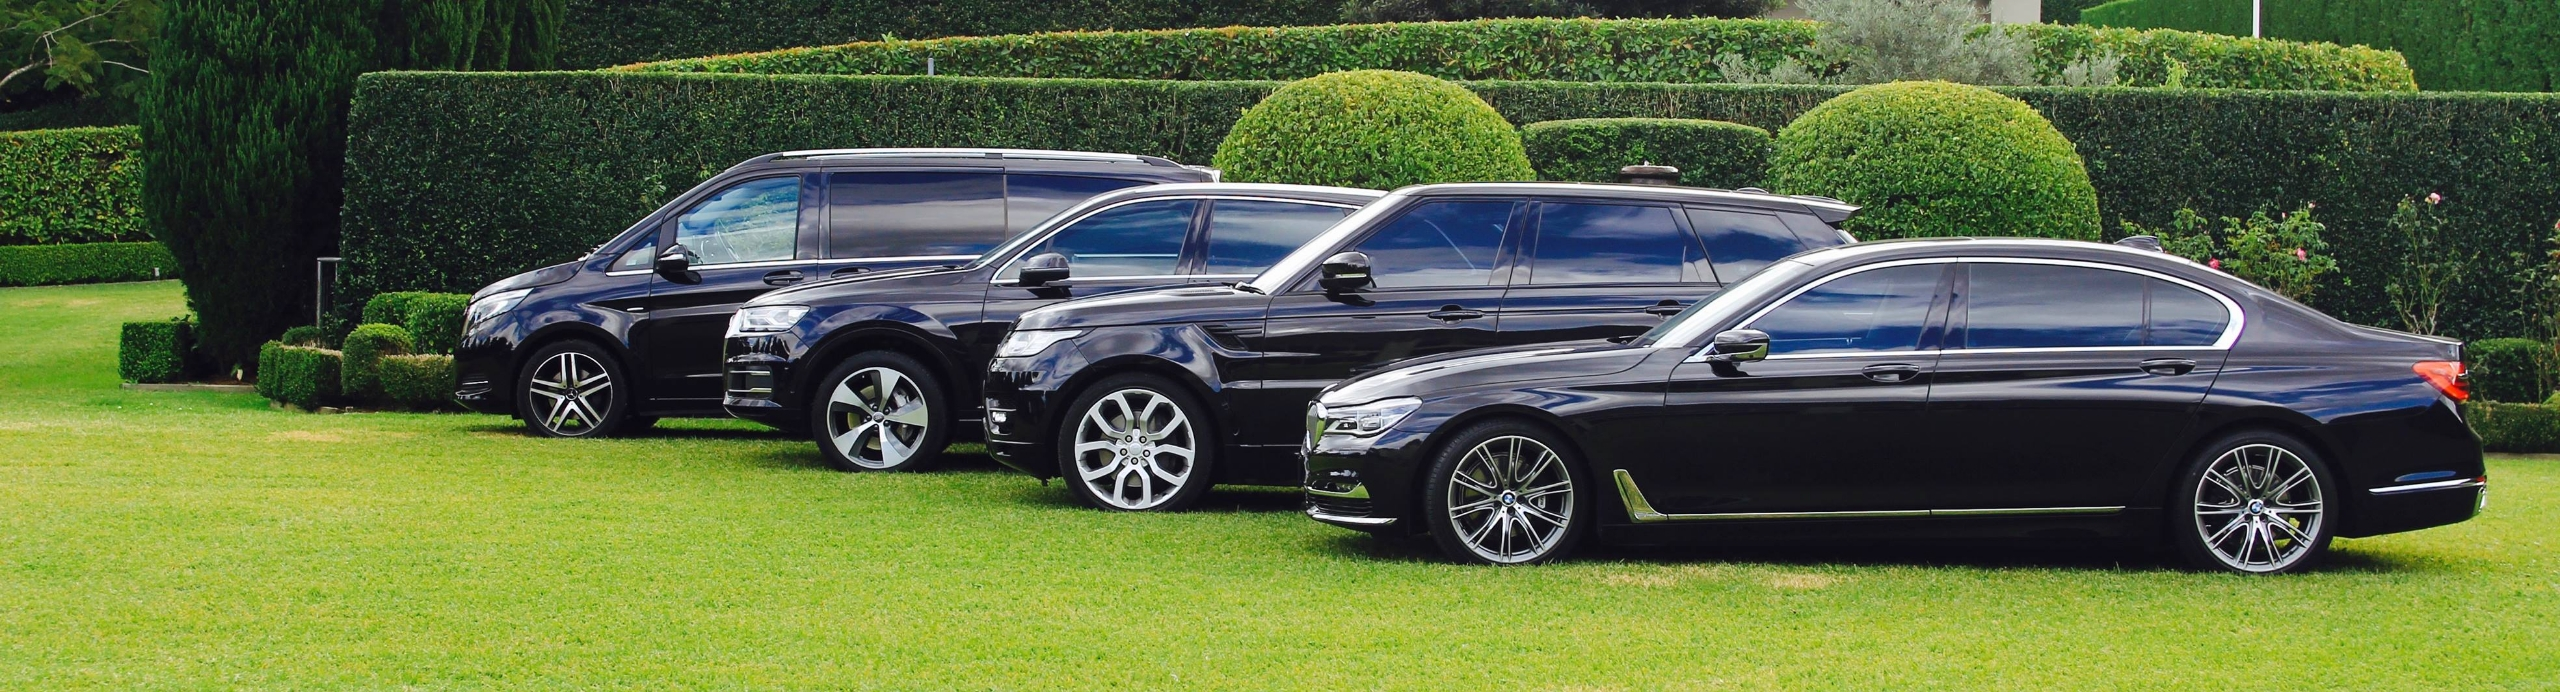 RRS Hire Cars and Tours (@rrshirecarsnsw) Cover Image